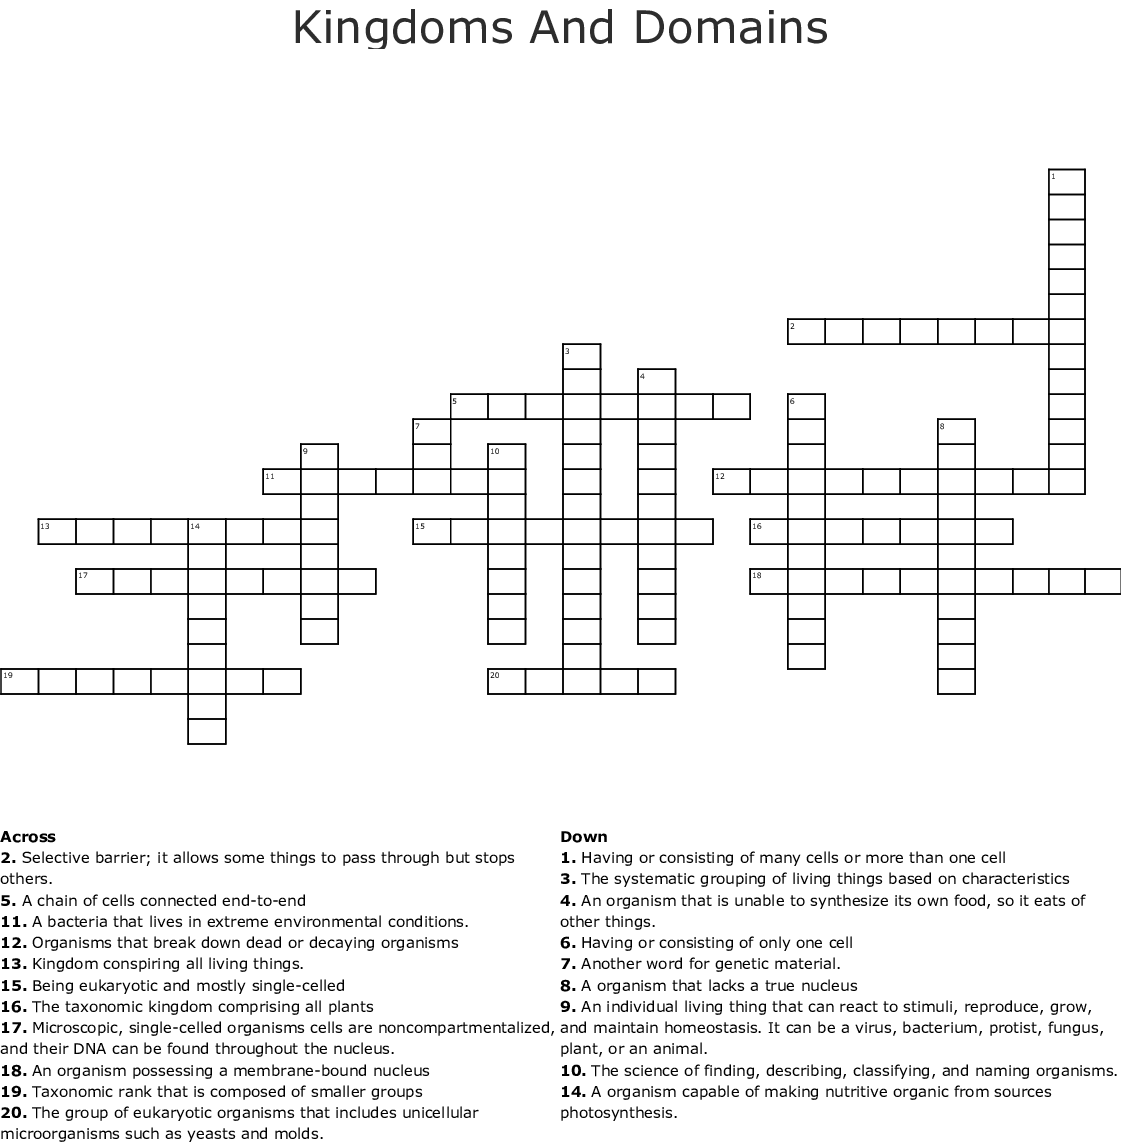 32 Domains And Kingdoms Worksheet Answers